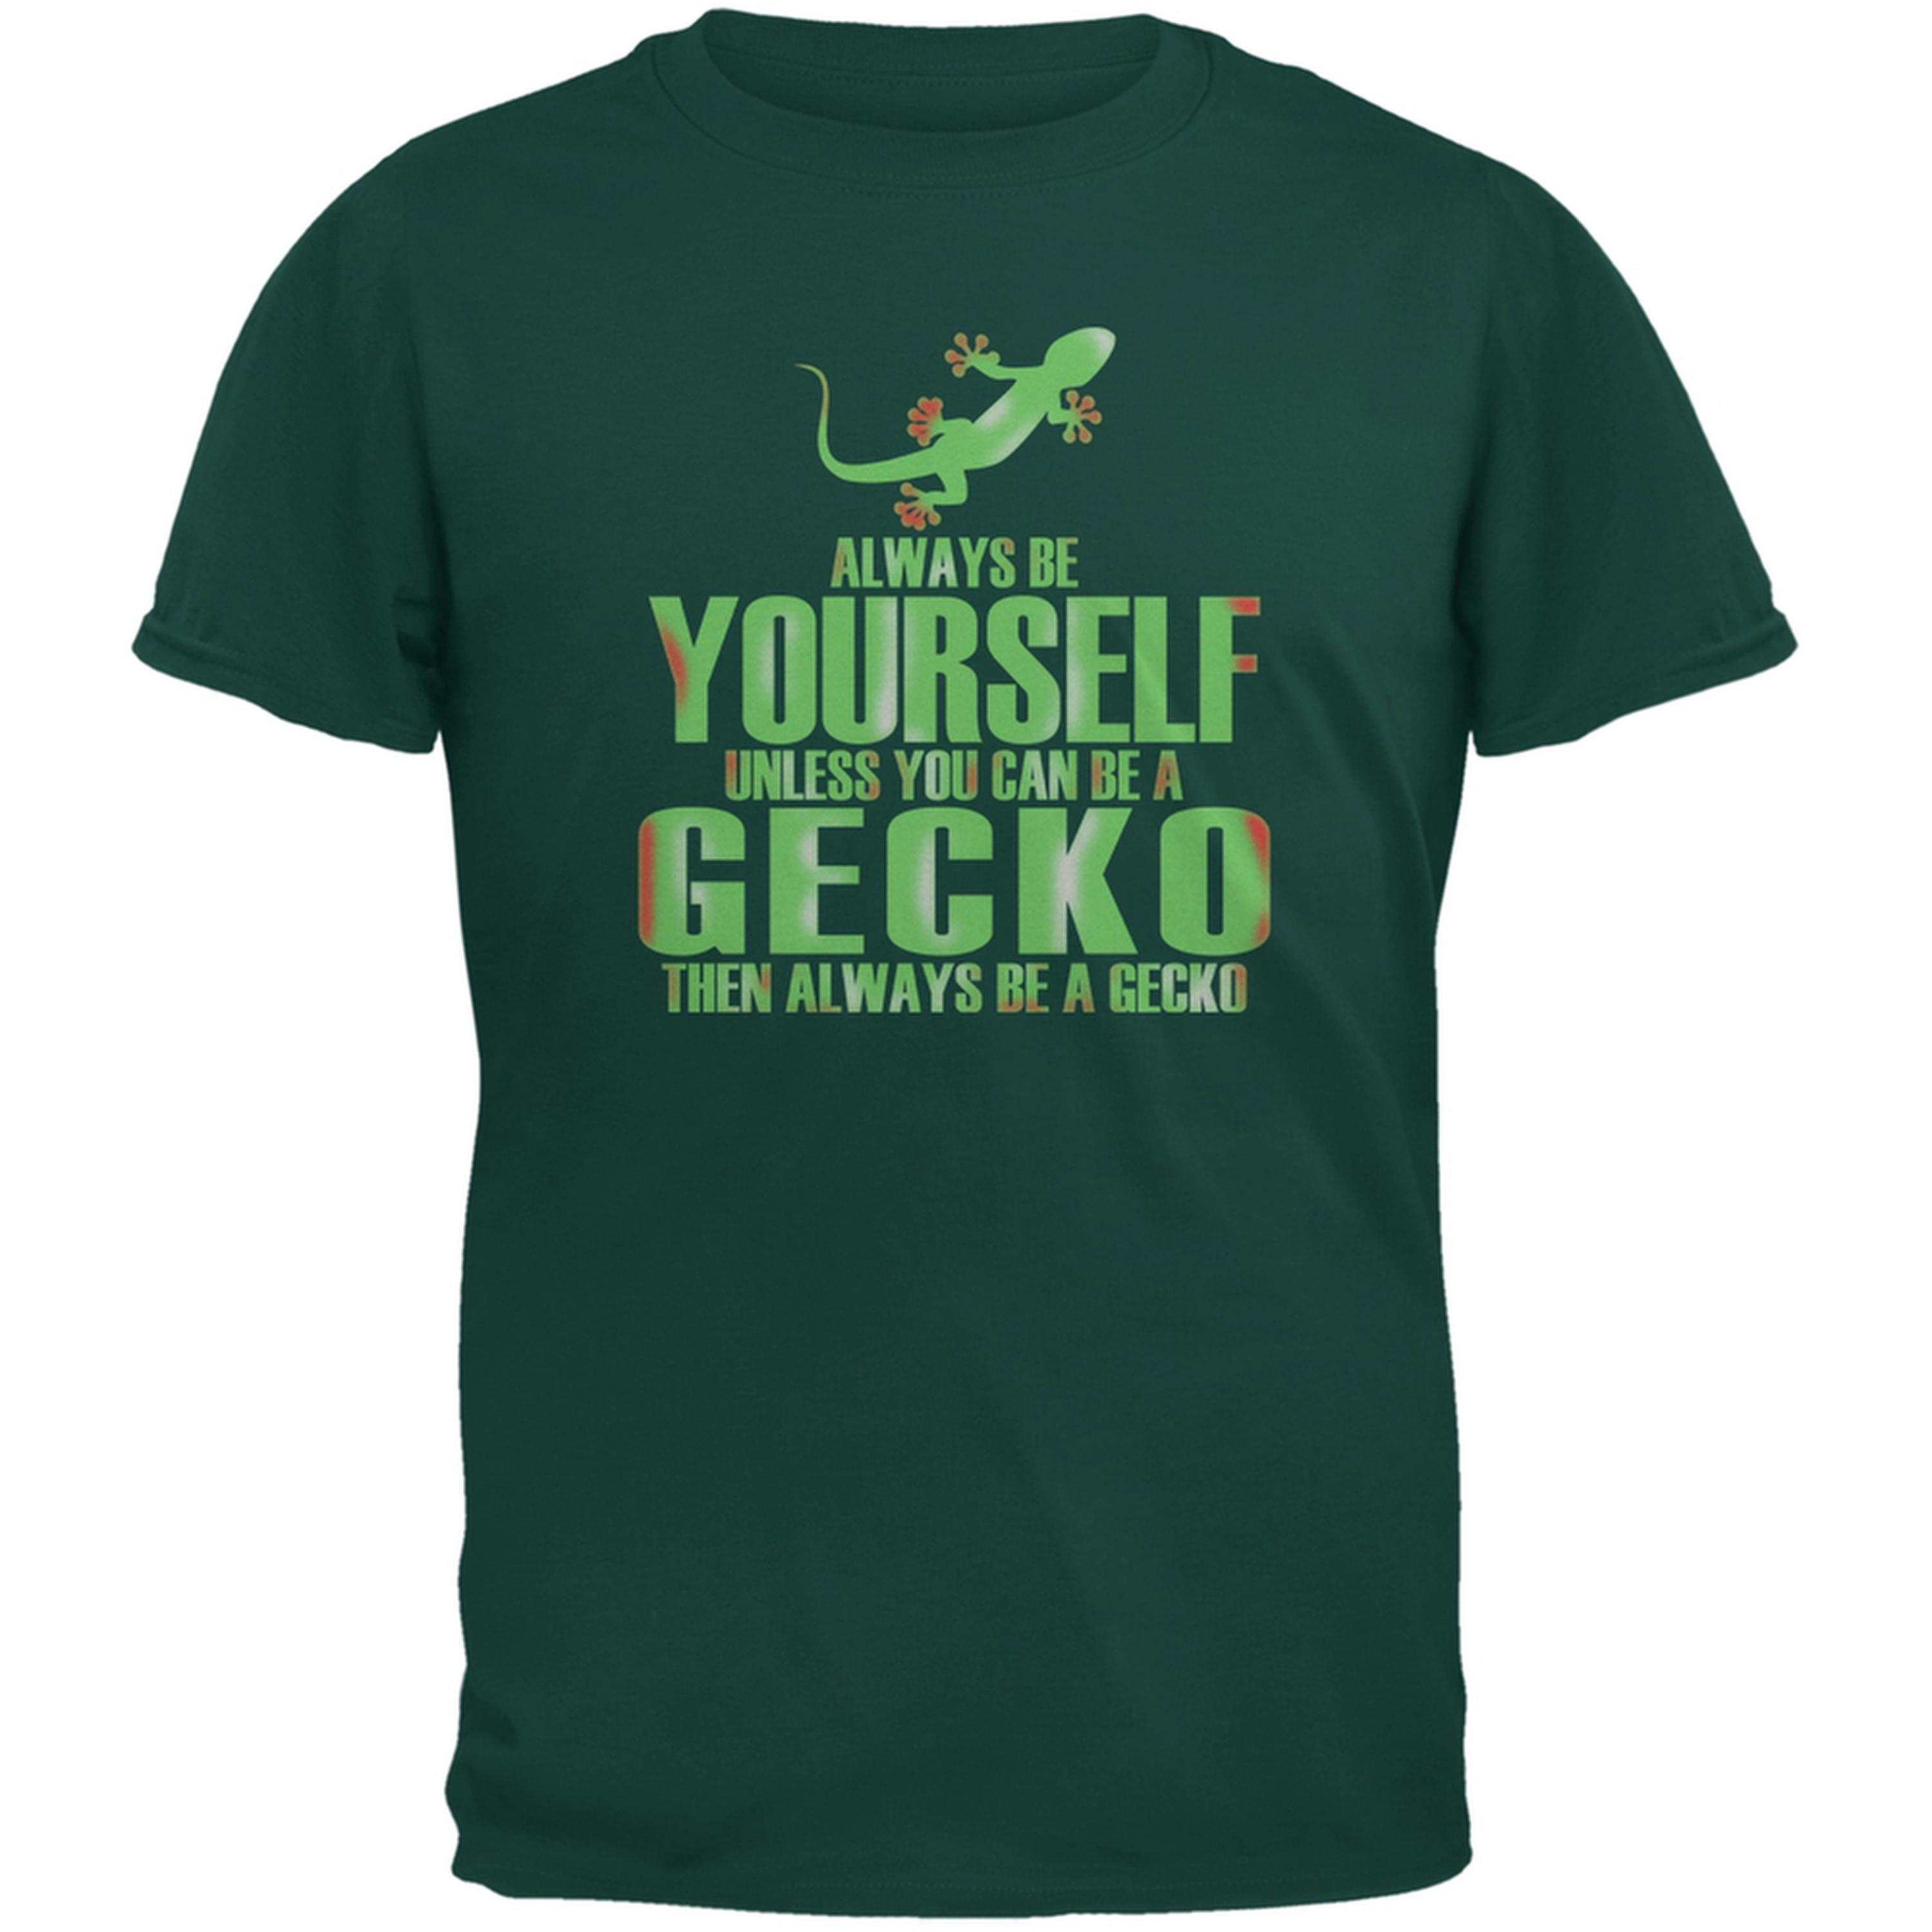 Always Be Yourself Gecko Forest Green Youth T-Shirt